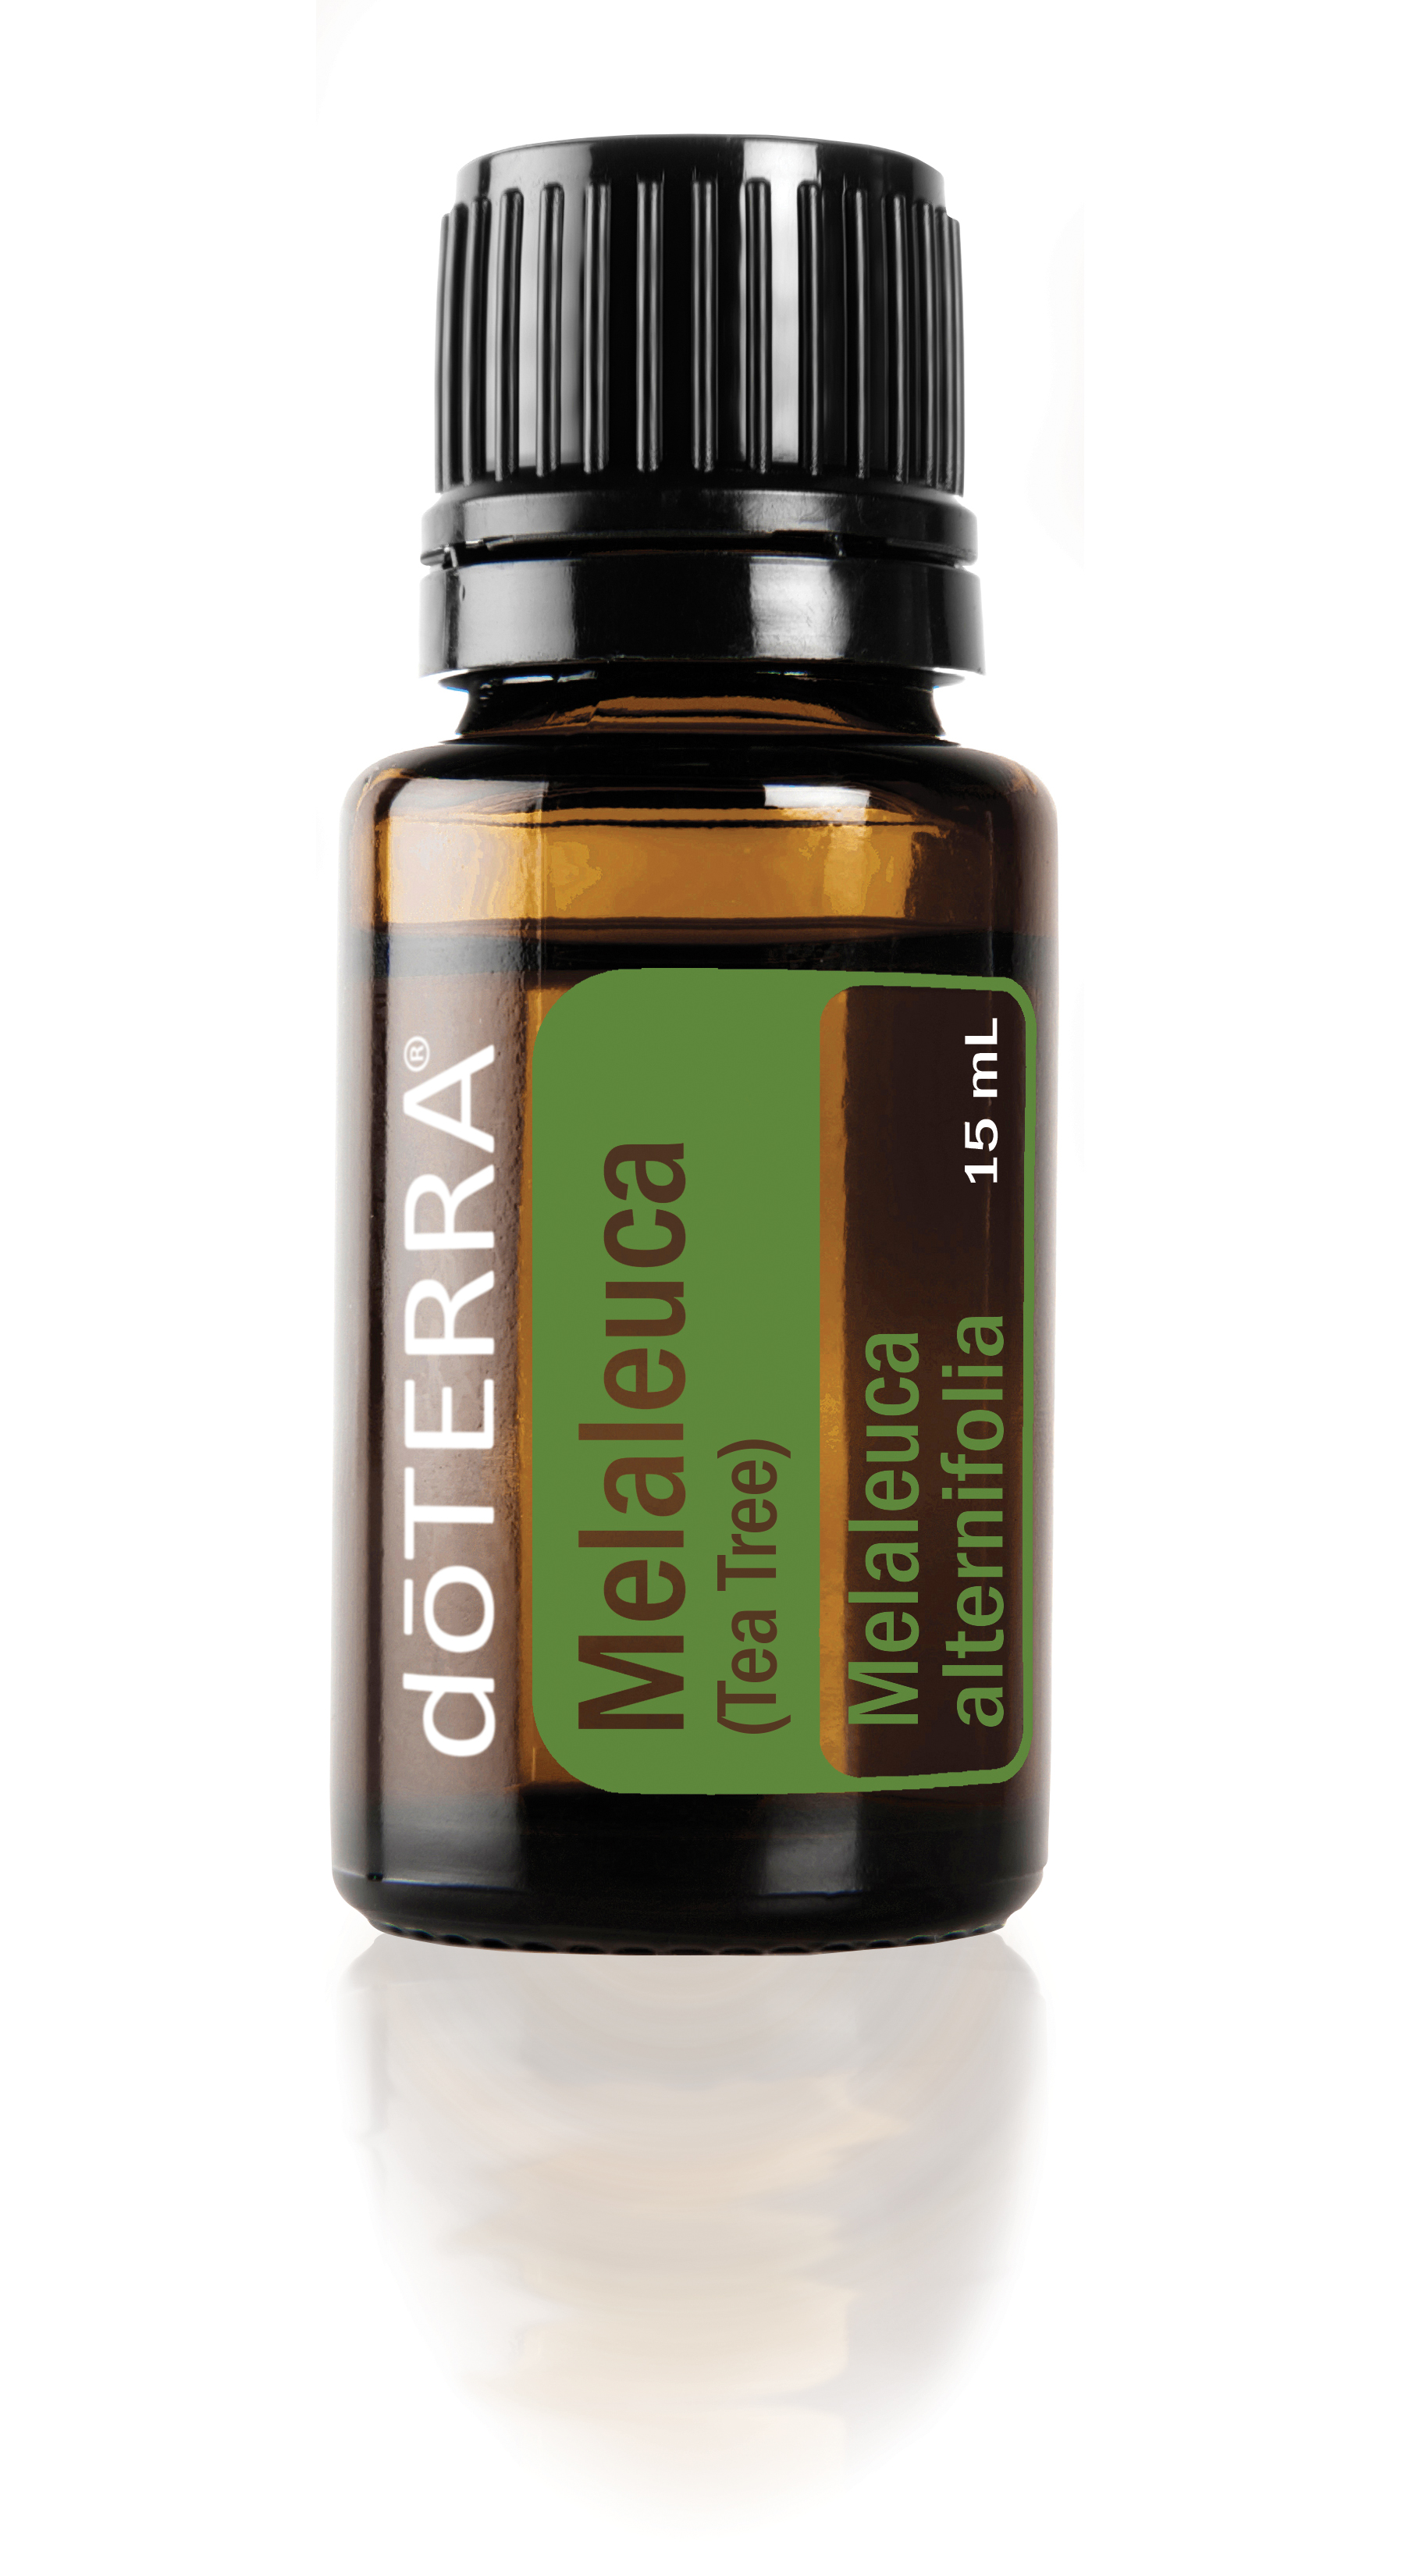 "Melaleuca (Tea Tree) - Your First Aid Oil - More commonly known as ""Tea Tree,"" Melaleuca essential oil has over 92 different compounds and limitless applications. The leaves of the Melaleuca tree were used by the Aborigines of Australia for centuries. During the 1930s and 1940s, tea tree oil became widely known as the go-to purifier and Australian World War II soldiers were given tea tree oil in their aid kits.The oil is steam-distilled from the leaves of certain myrtle shrubs and trees, and said to be 12x the strength of phenol. Its main chemical components are: Terpinen-4-0l, Gamma Terpinene, Linalool, Limonene, and Alpha Pinene. It is a very versatile oil, capable of providing many therapeutic benefits.Three Primary benefits of Melaleuca Essential Oil1. It protects against environmental and seasonal threats.2. Renowned for its cleansing and rejuvenating effect on the skin.3. Melaleuca increases sweating and promotes the removal of toxins from the body. It helps to remove excess water and salts from the body while cleansing the pores.Top Ten Uses for Melaleuca Essential Oil1. Melaleuca can be very beneficial to take care of certain hair conditions. If you suffer from dry scalp, apply a diluted amount of the oil to your scalp. r.2. If you are suffering from seasonal distresses or other symptoms you will get relief by adding 2-3 drops of Melaleuca oil to a carrier oil and rubbing it on your chest.3. It can be used aromatically or added to homemade cleaners to disinfect and help protect against environmental threat.4. Melaleuca essential oil can stimulate your immune system for better health.5. It is a great essential oil to help if you've had too much sun.6. Melaleuca oil is considered one of the home remedies for occasional skin blemishes.7. Add 2-3 drops to your diffusers and diffuse around your home to stop household threats.8. It can help with the causes of body odor. Use a dab on your armpits with some coconut oil.9. It's a perfect ingredient in homemade toothpaste. It's been shown to help to restore mouth and teeth health.10. It has powerful cleansing and purifying properties, and would be an excellent addition to your laundry as it is washing to give your load a boost."